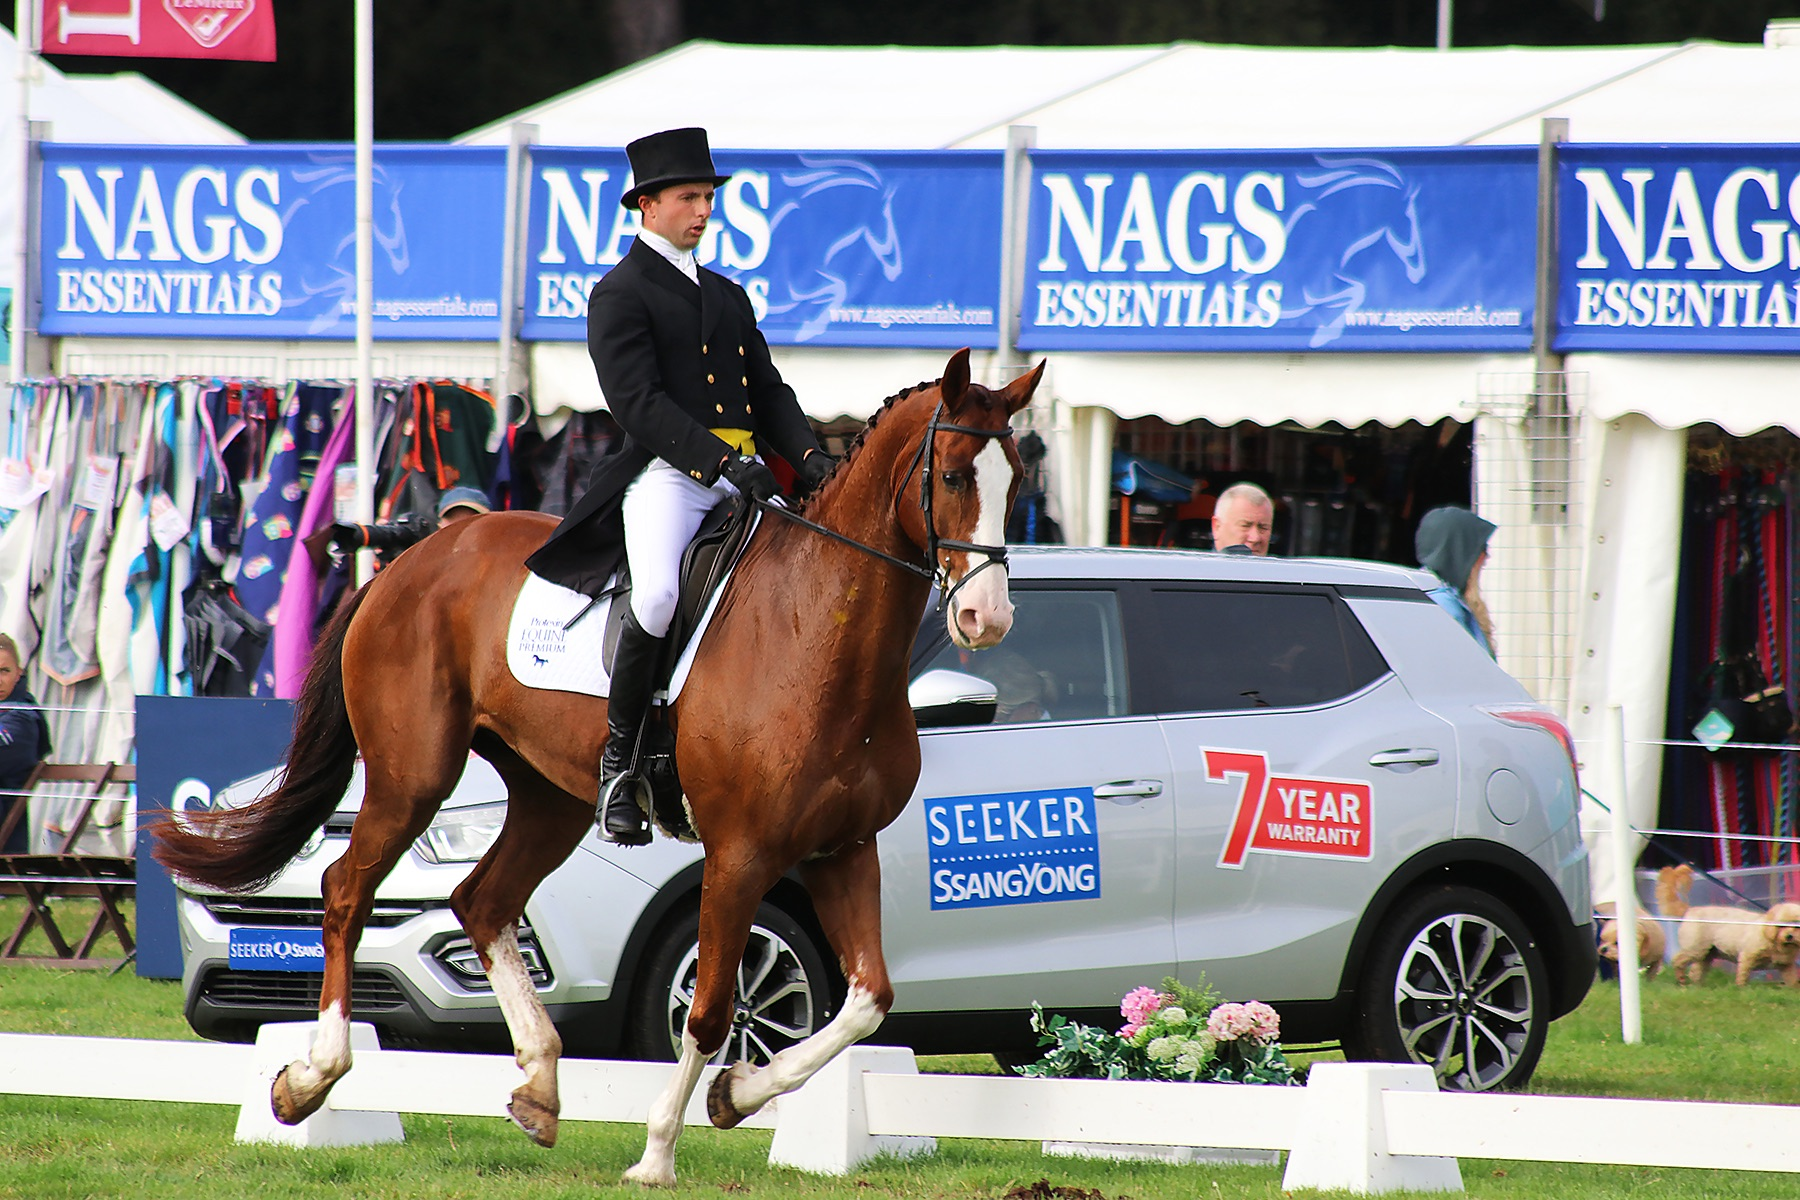 Seeker SsangYong sponsors of the Osberton International Horse Trials 2019 congratulates winning eventer Piggy French